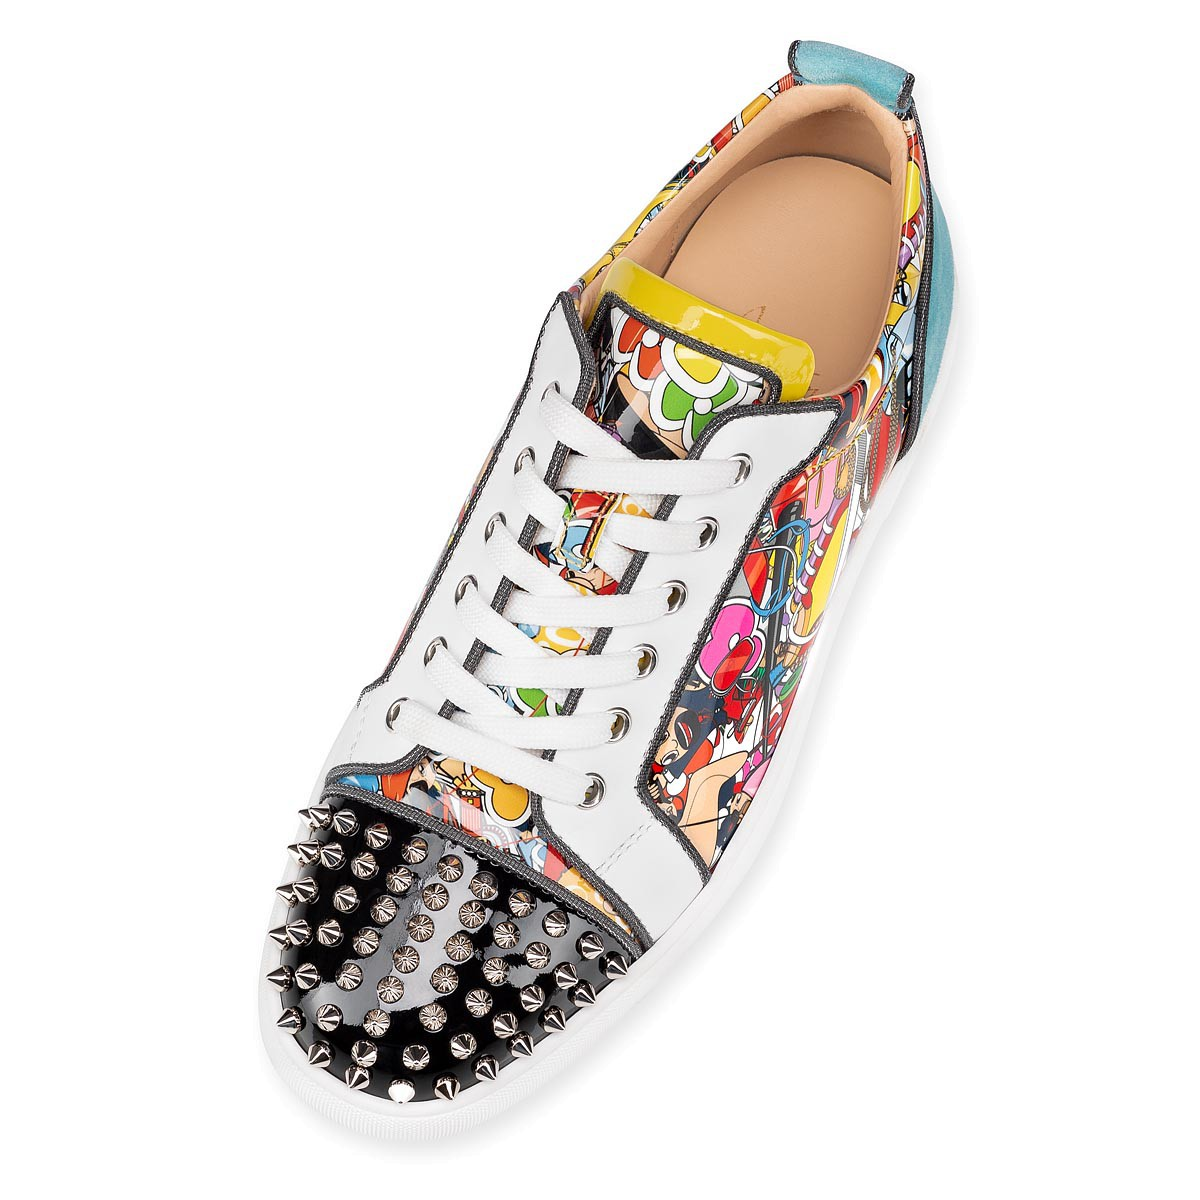 メンズシューズ - Louis Junior Spikes Orlato - Christian Louboutin